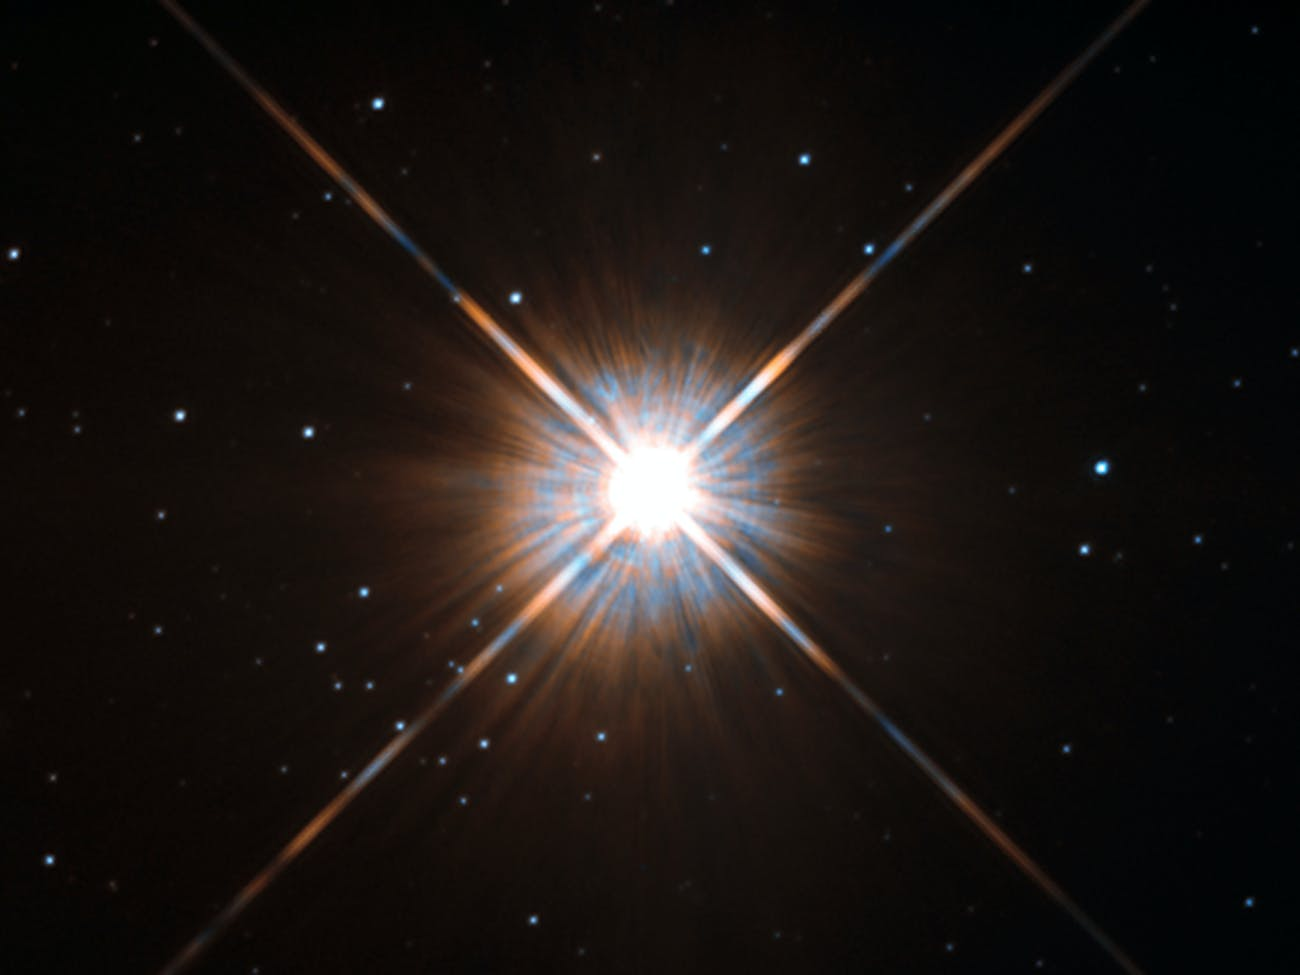 Proxima Centauri as seen by Hubble